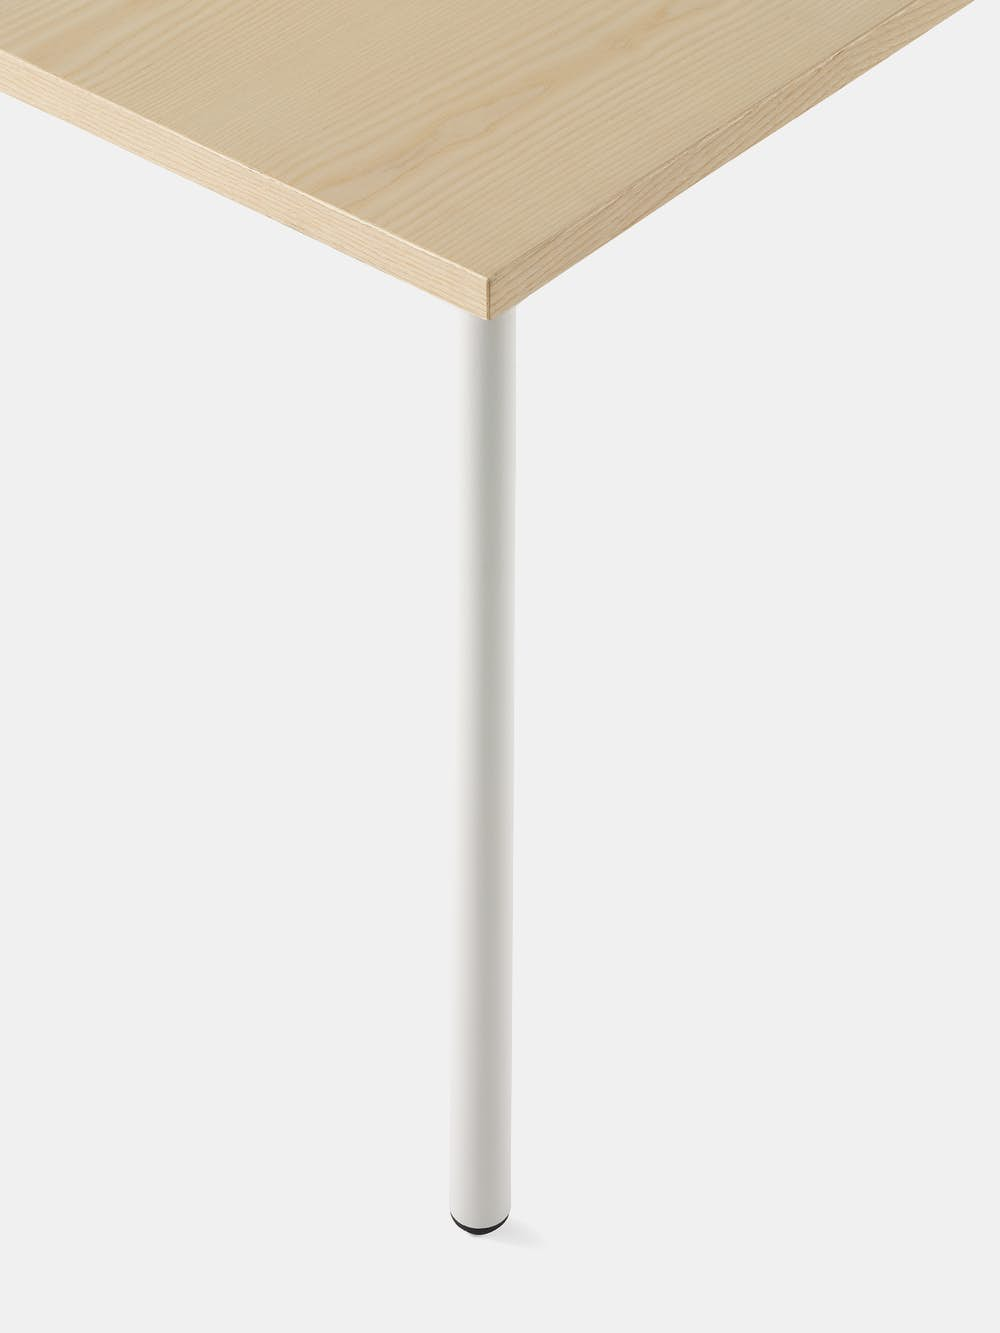 OE1 Rectangular Table with light brown surface and white legs with an up close view of the rounded leg.